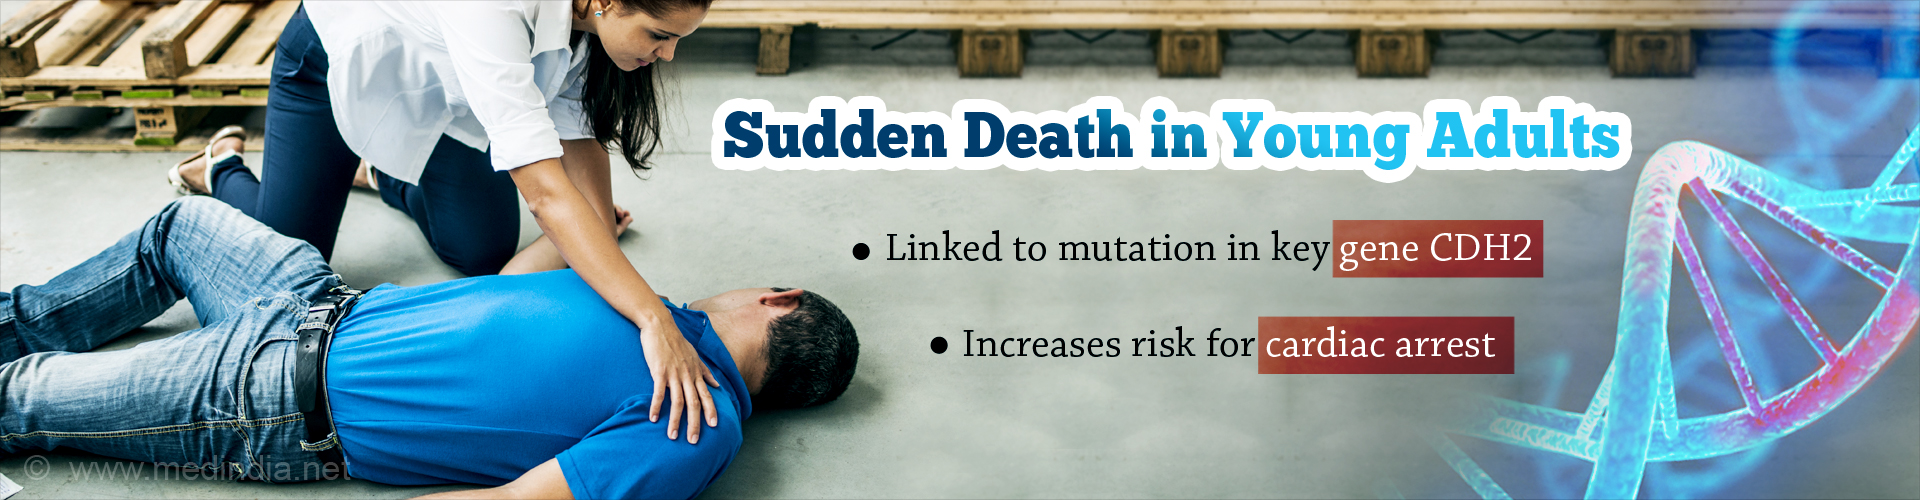 Sudden Death in the Young and in Athletes Linked to Gene Mutation